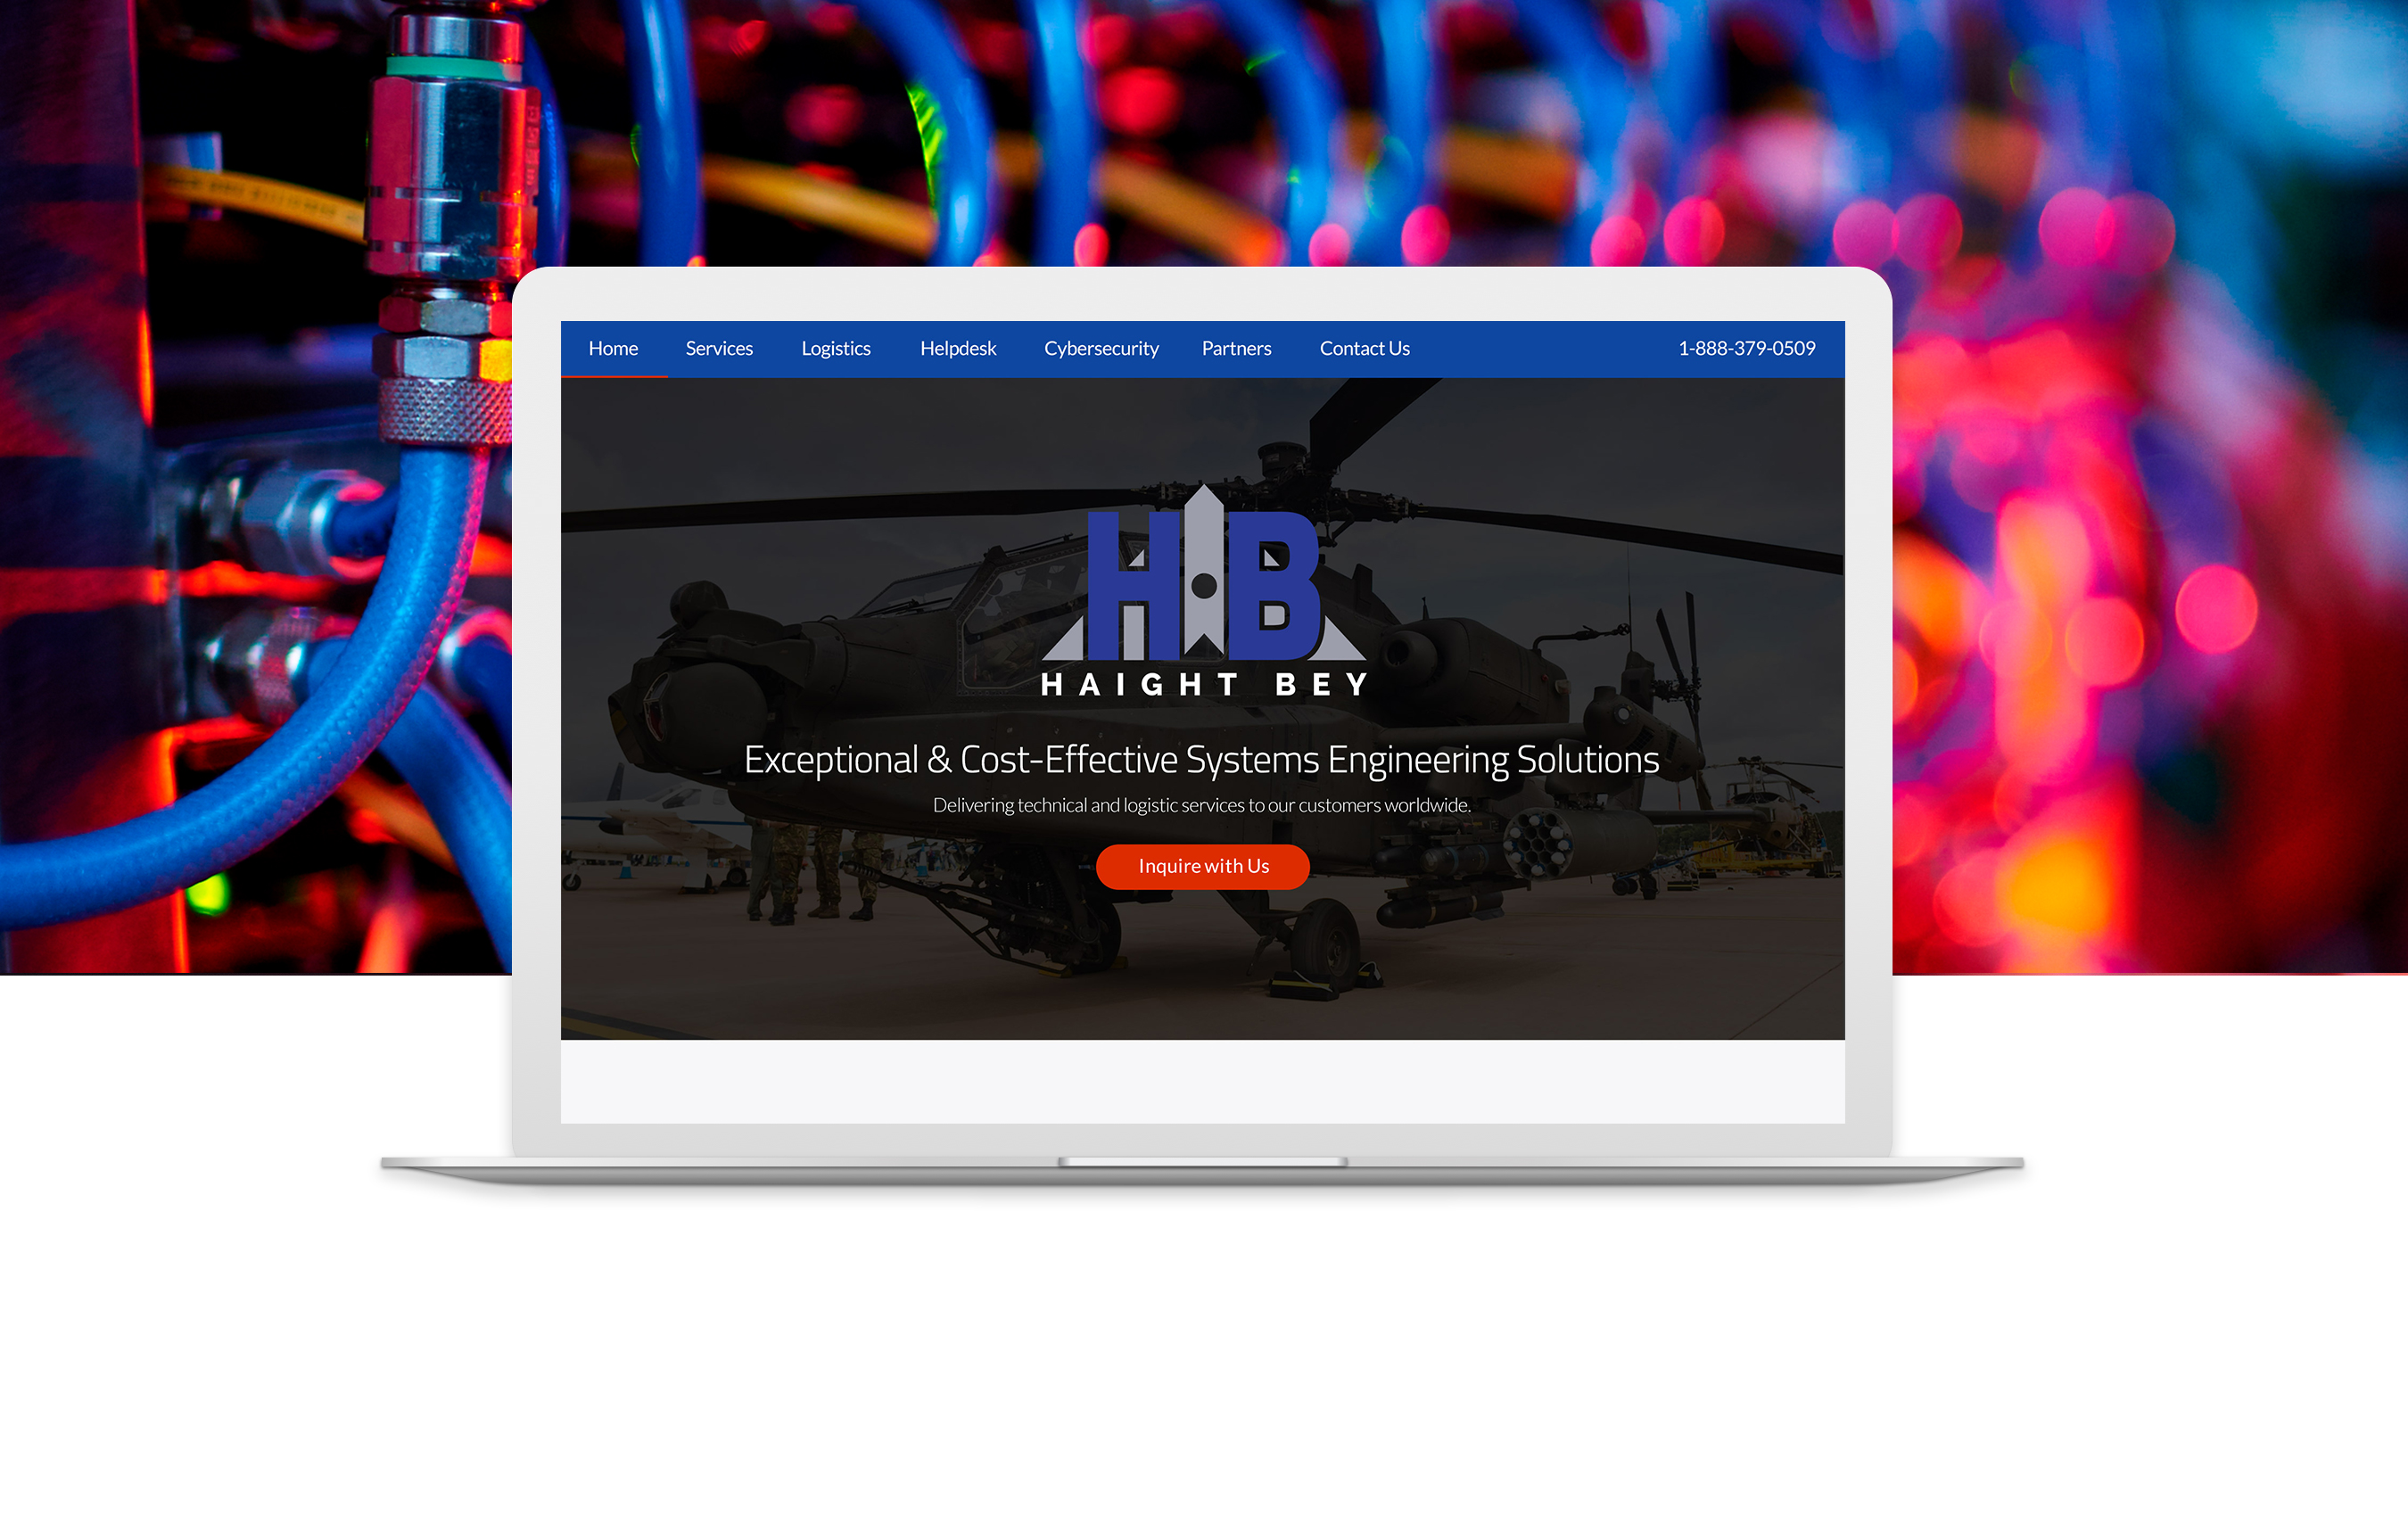 haightbey.com home page shown in laptop